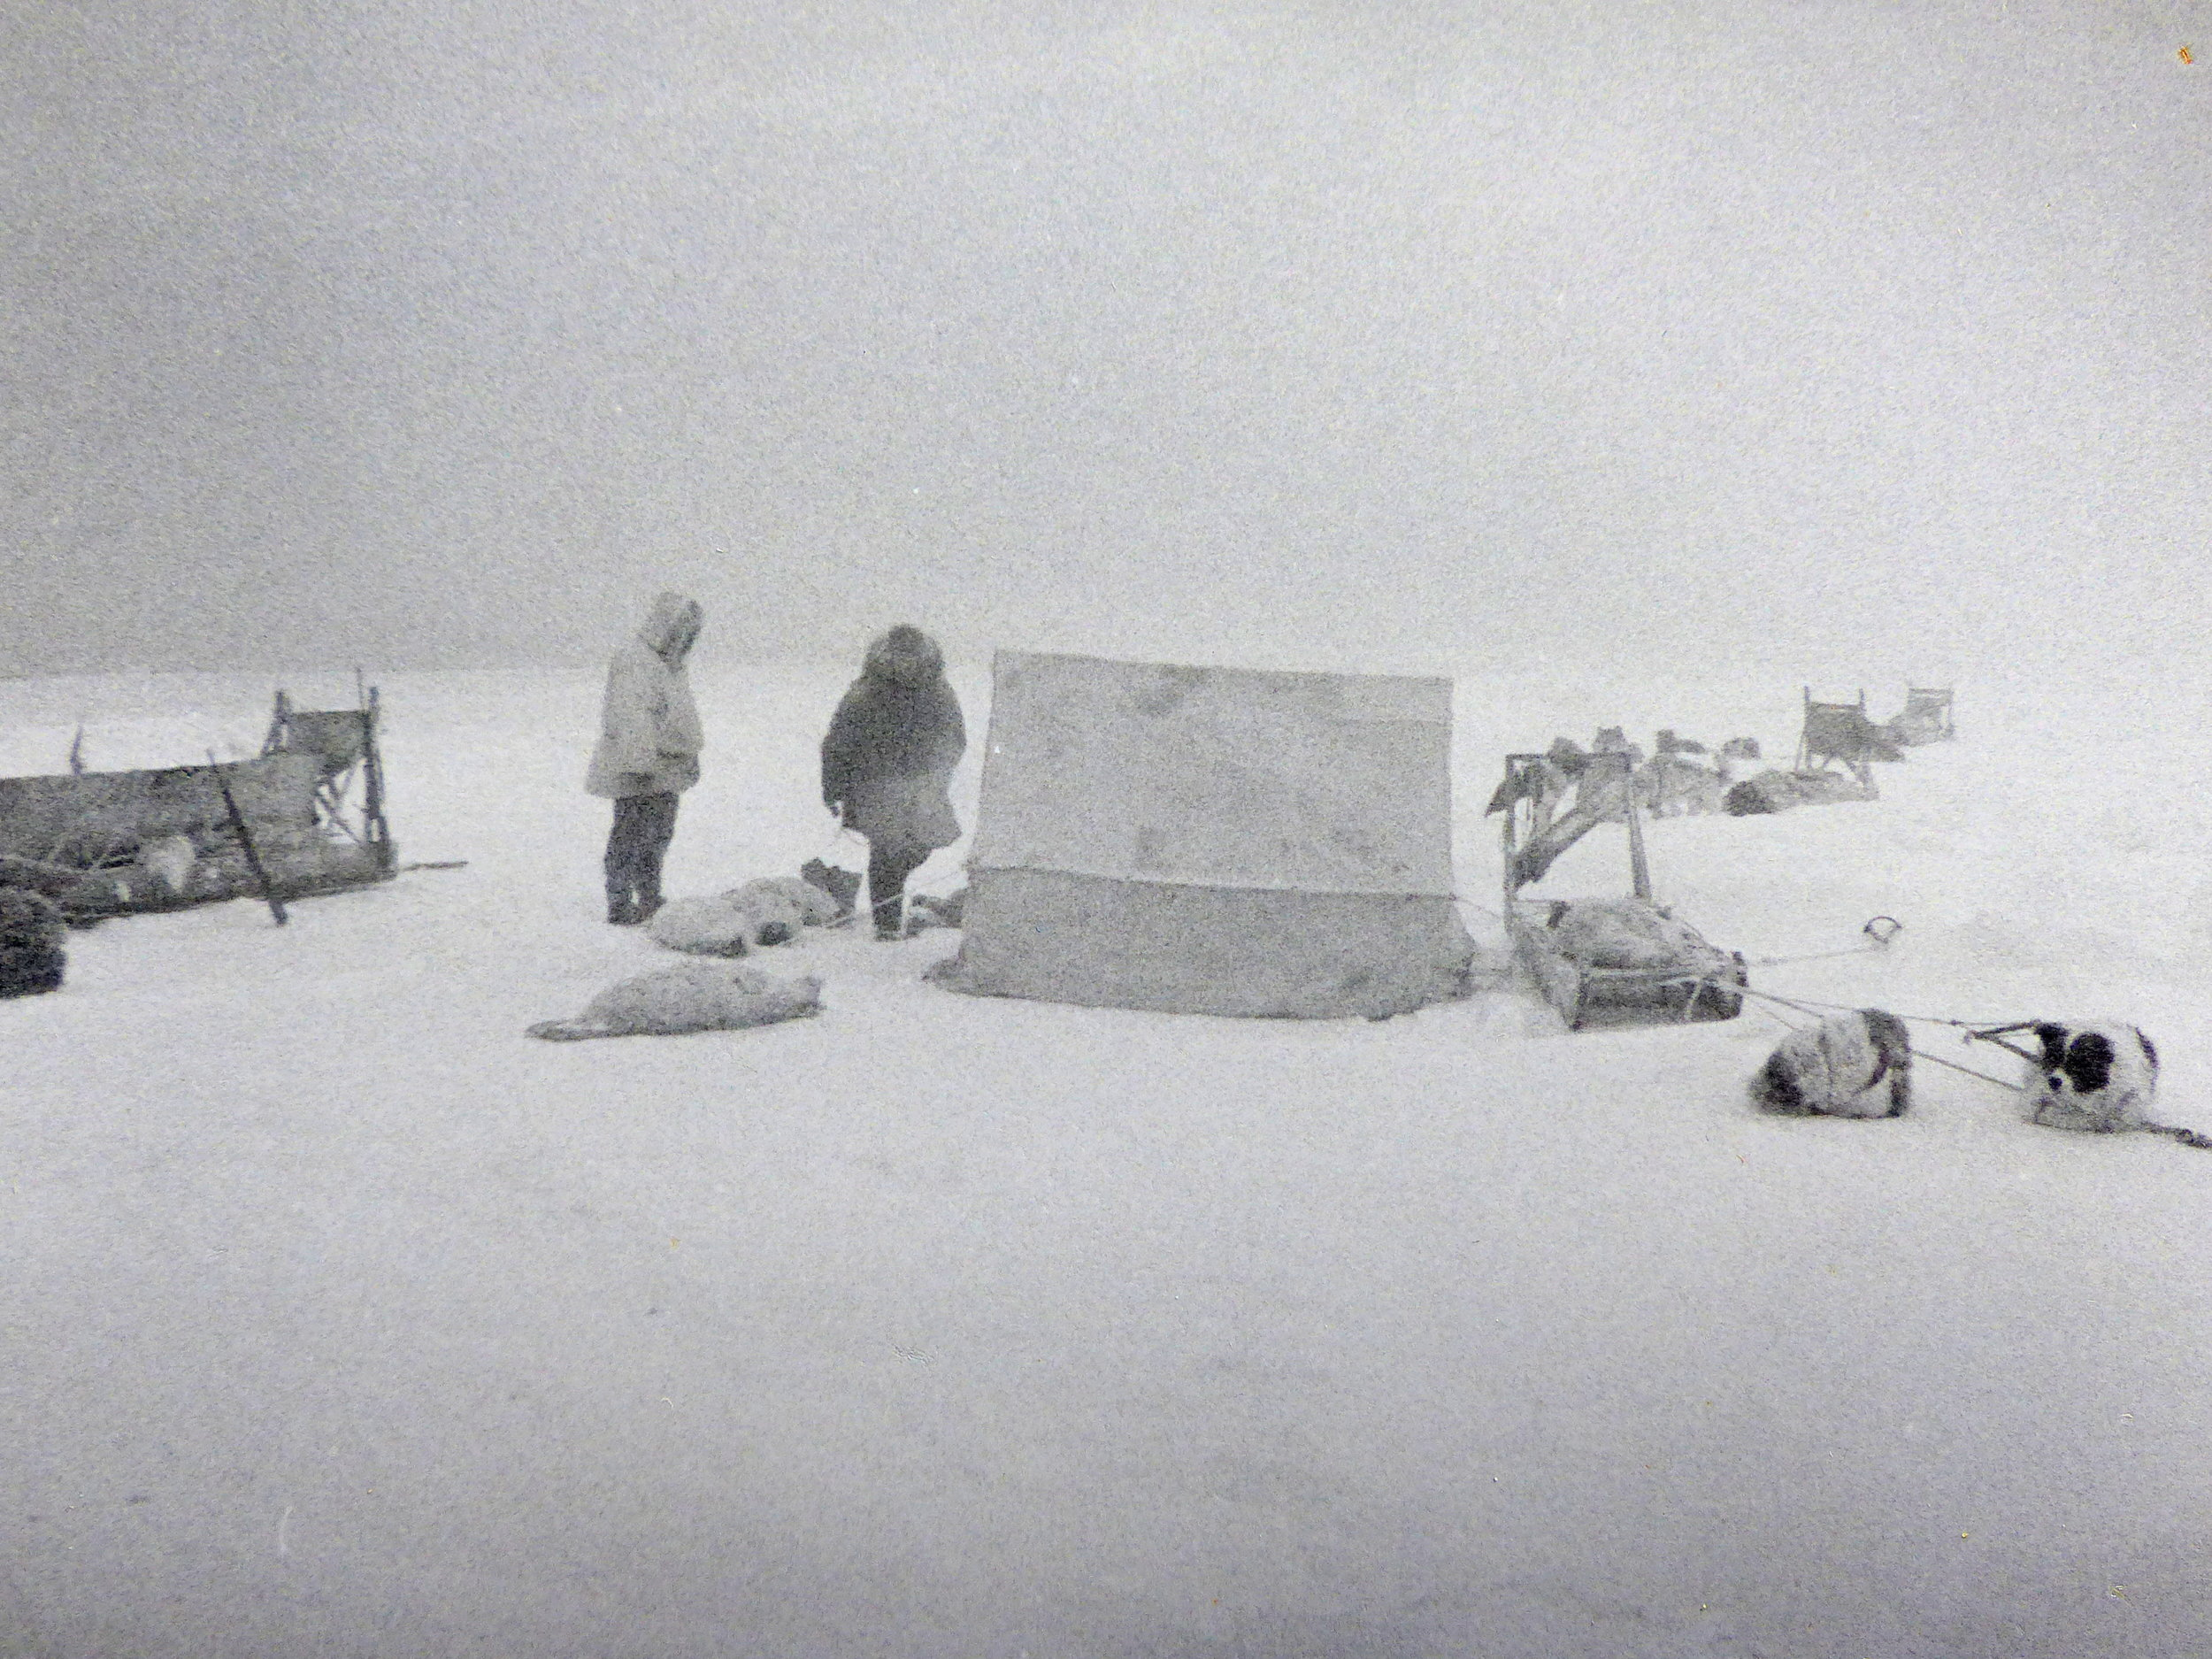 Inupiaq seal hunters with dog teams and a warming tent on the sea ice offshore from Wainwright, on the Arctic Slope (1965 photo).